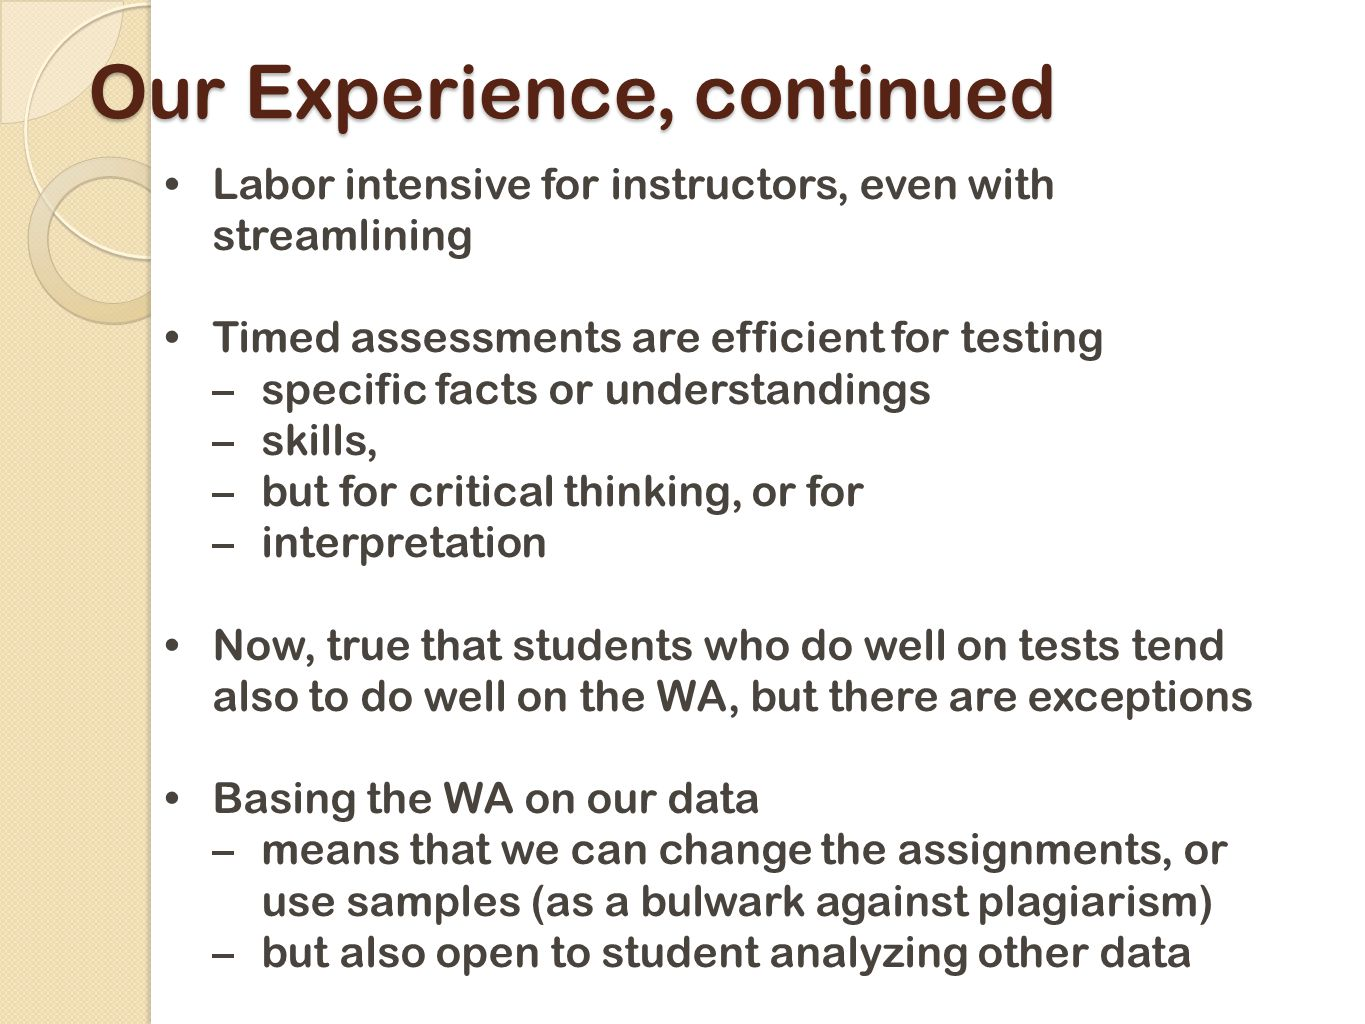 Our Experience, continued Labor intensive for instructors, even with streamlining Timed assessments are efficient for testing –specific facts or understandings –skills, –but for critical thinking, or for –interpretation Now, true that students who do well on tests tend also to do well on the WA, but there are exceptions Basing the WA on our data –means that we can change the assignments, or use samples (as a bulwark against plagiarism) –but also open to student analyzing other data